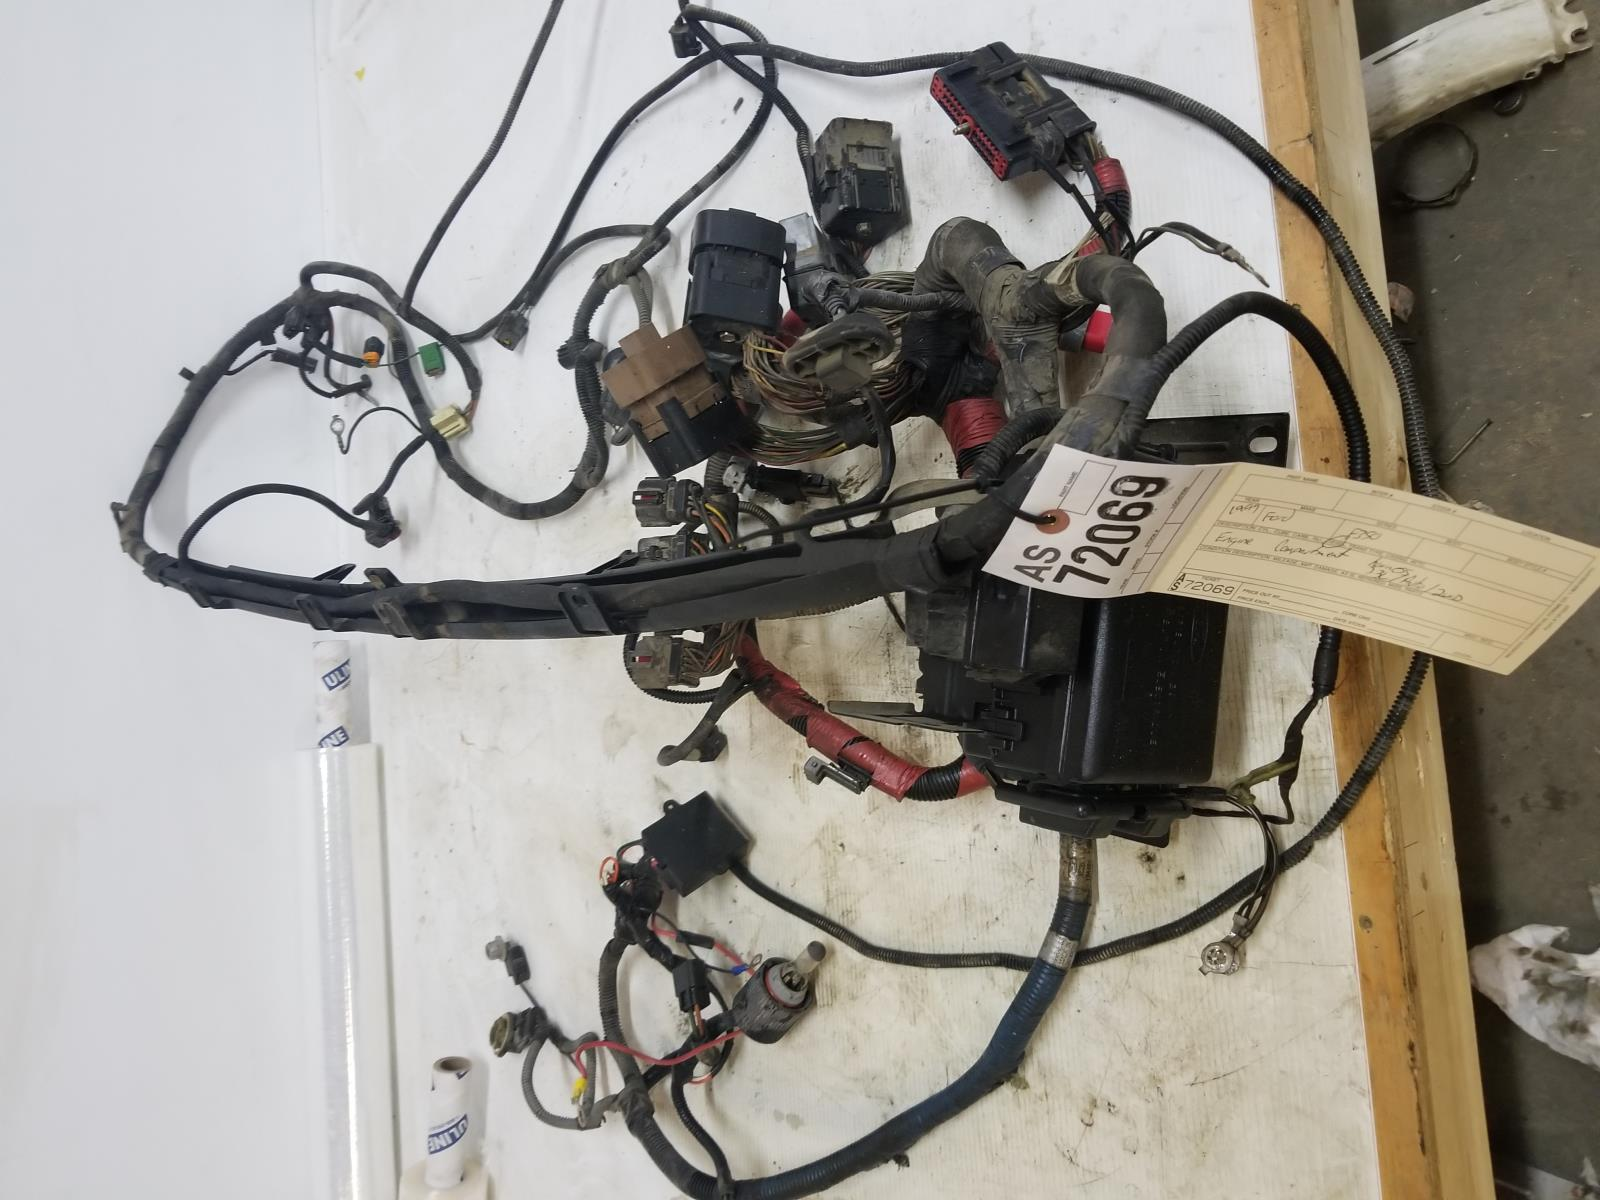 Details about 1999 Ford F250 F350 7.3L engine compartment wiring as72069 on